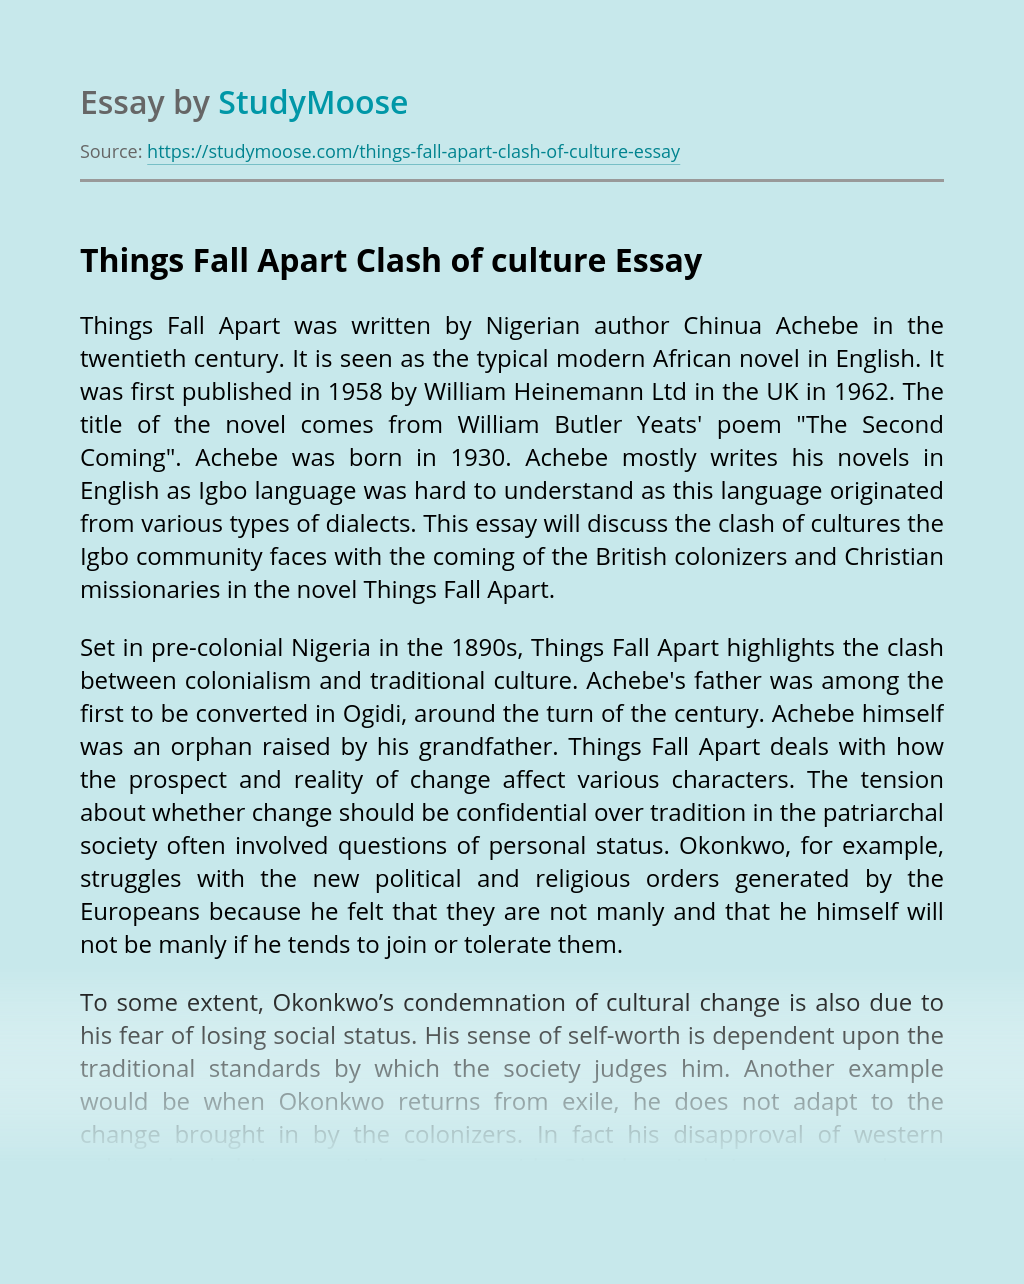 Things Fall Apart Clash of culture